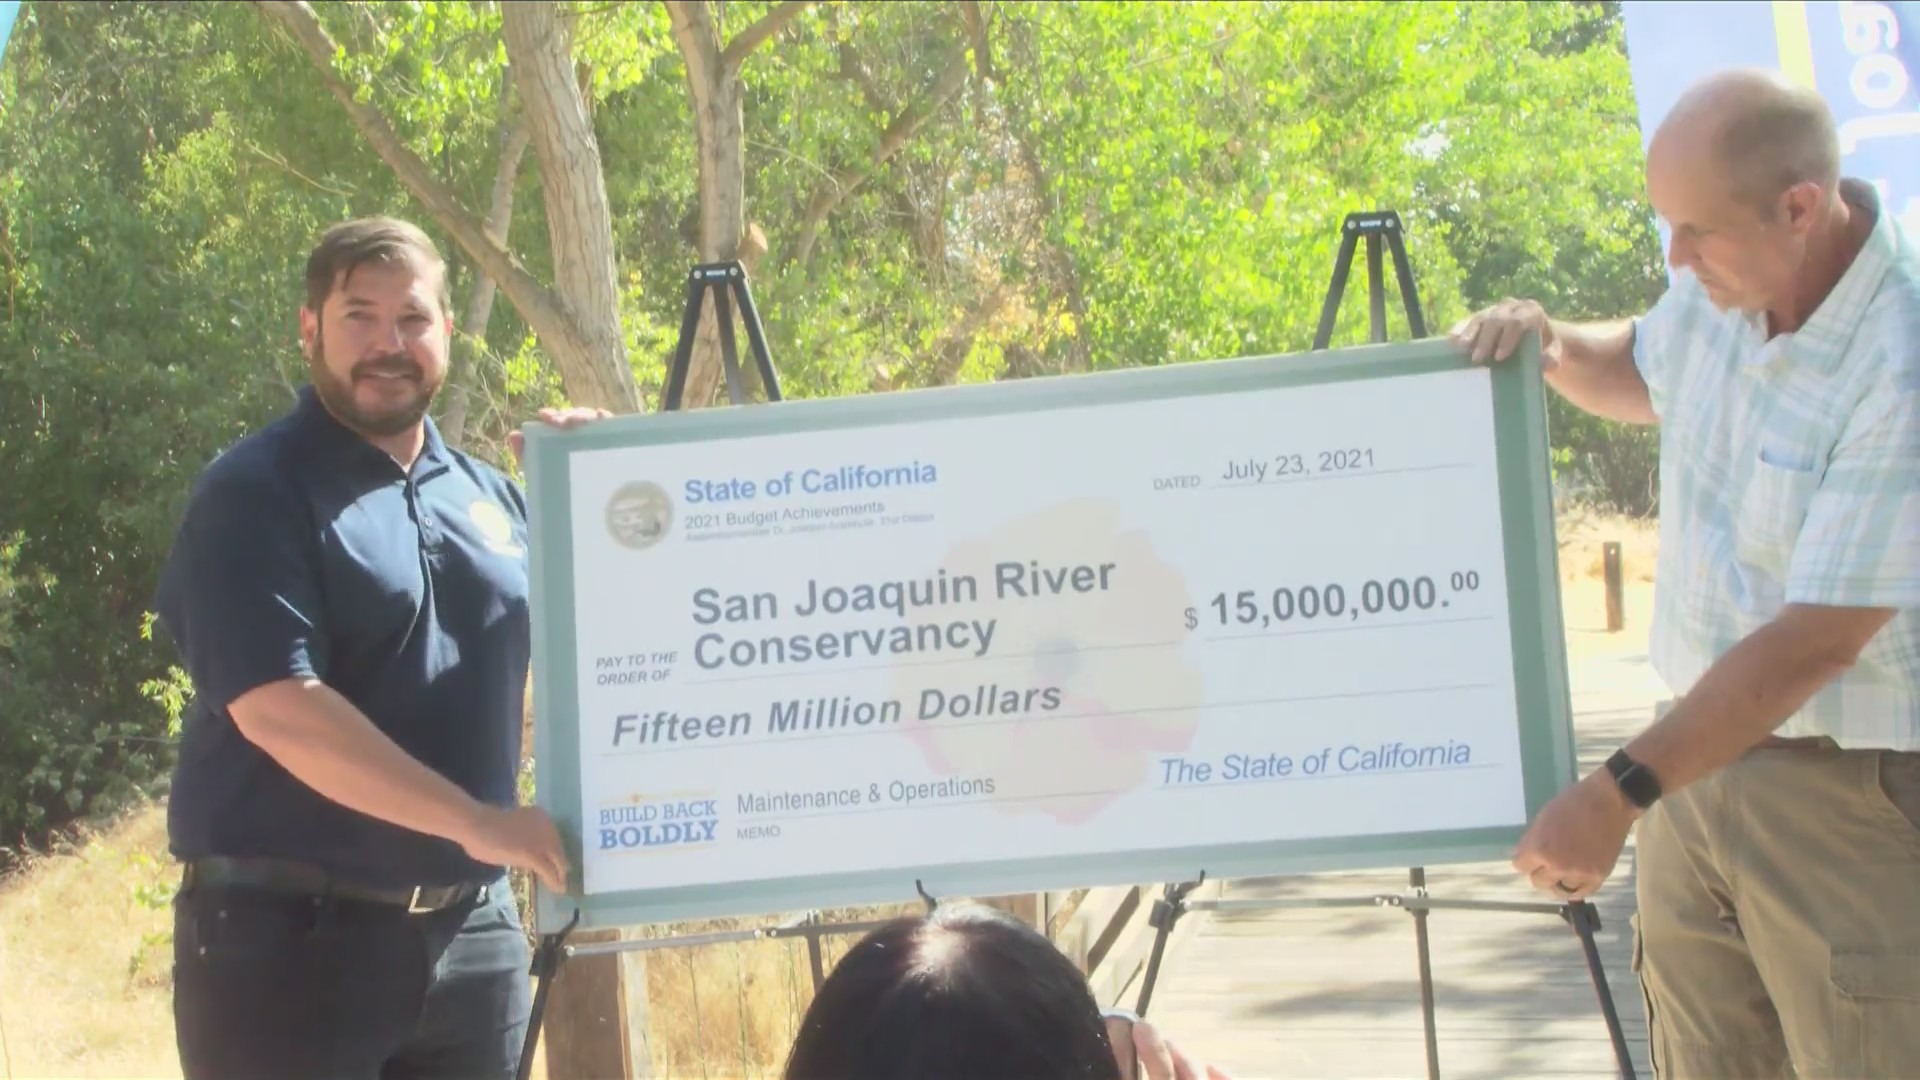 $15M of state money is going to the San Joaquin River Conservancy, critics say timing is questionable